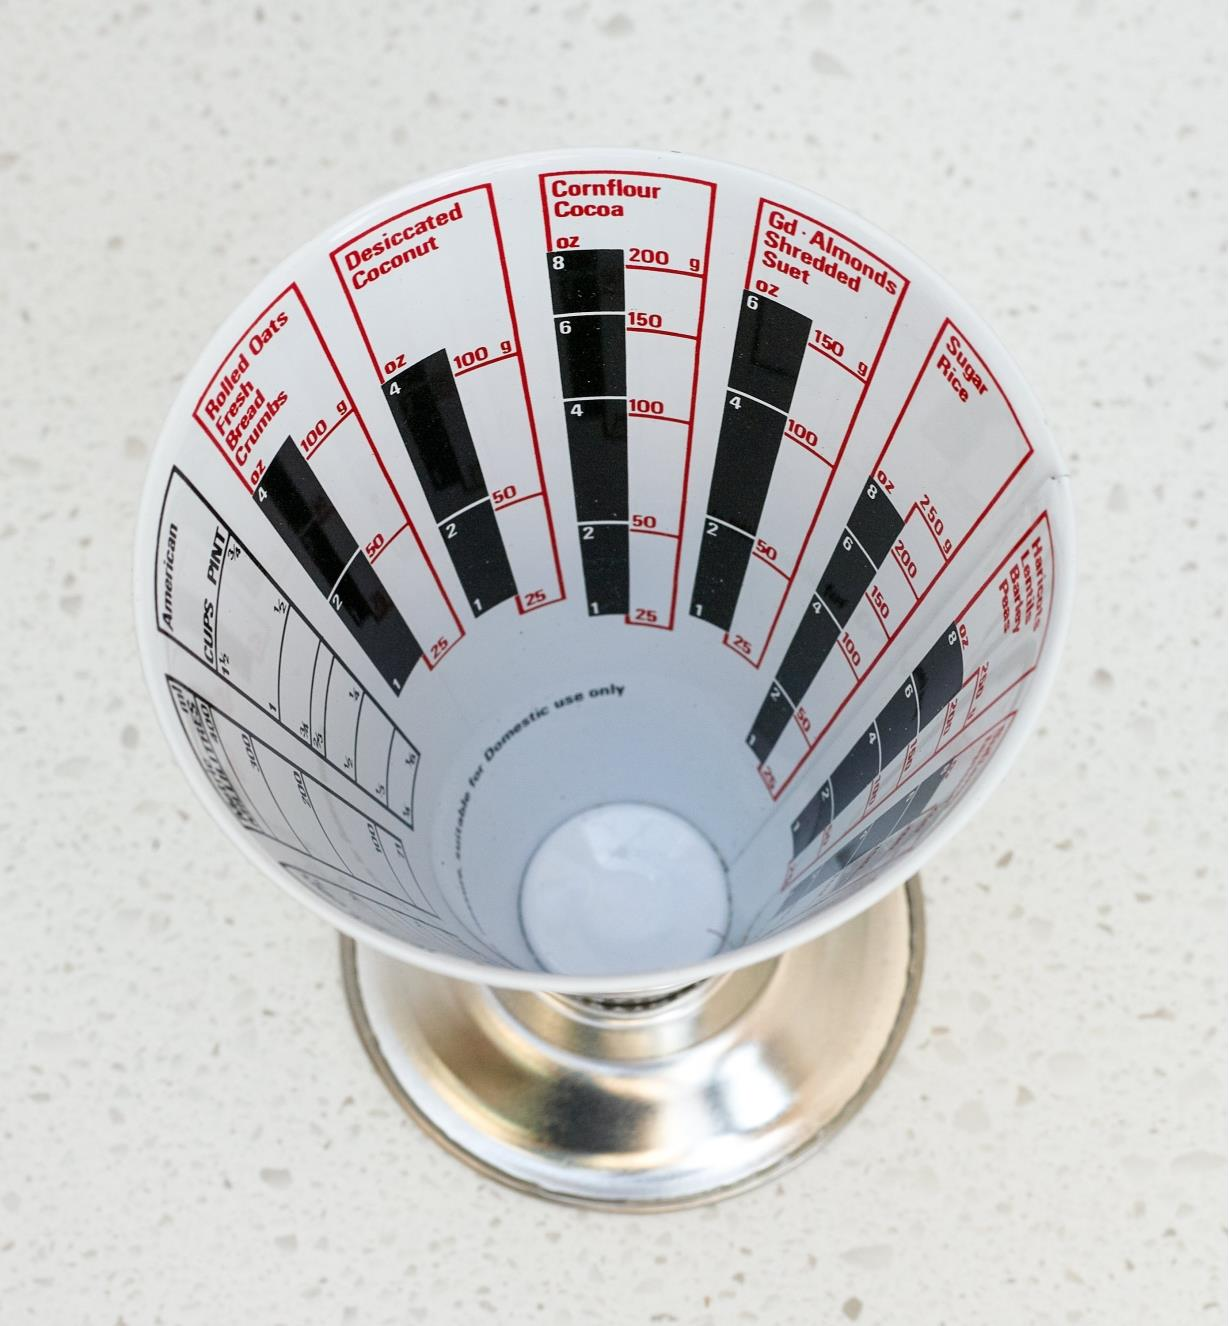 Top view of the inside of the Dry-Weight Measuring Cup, English